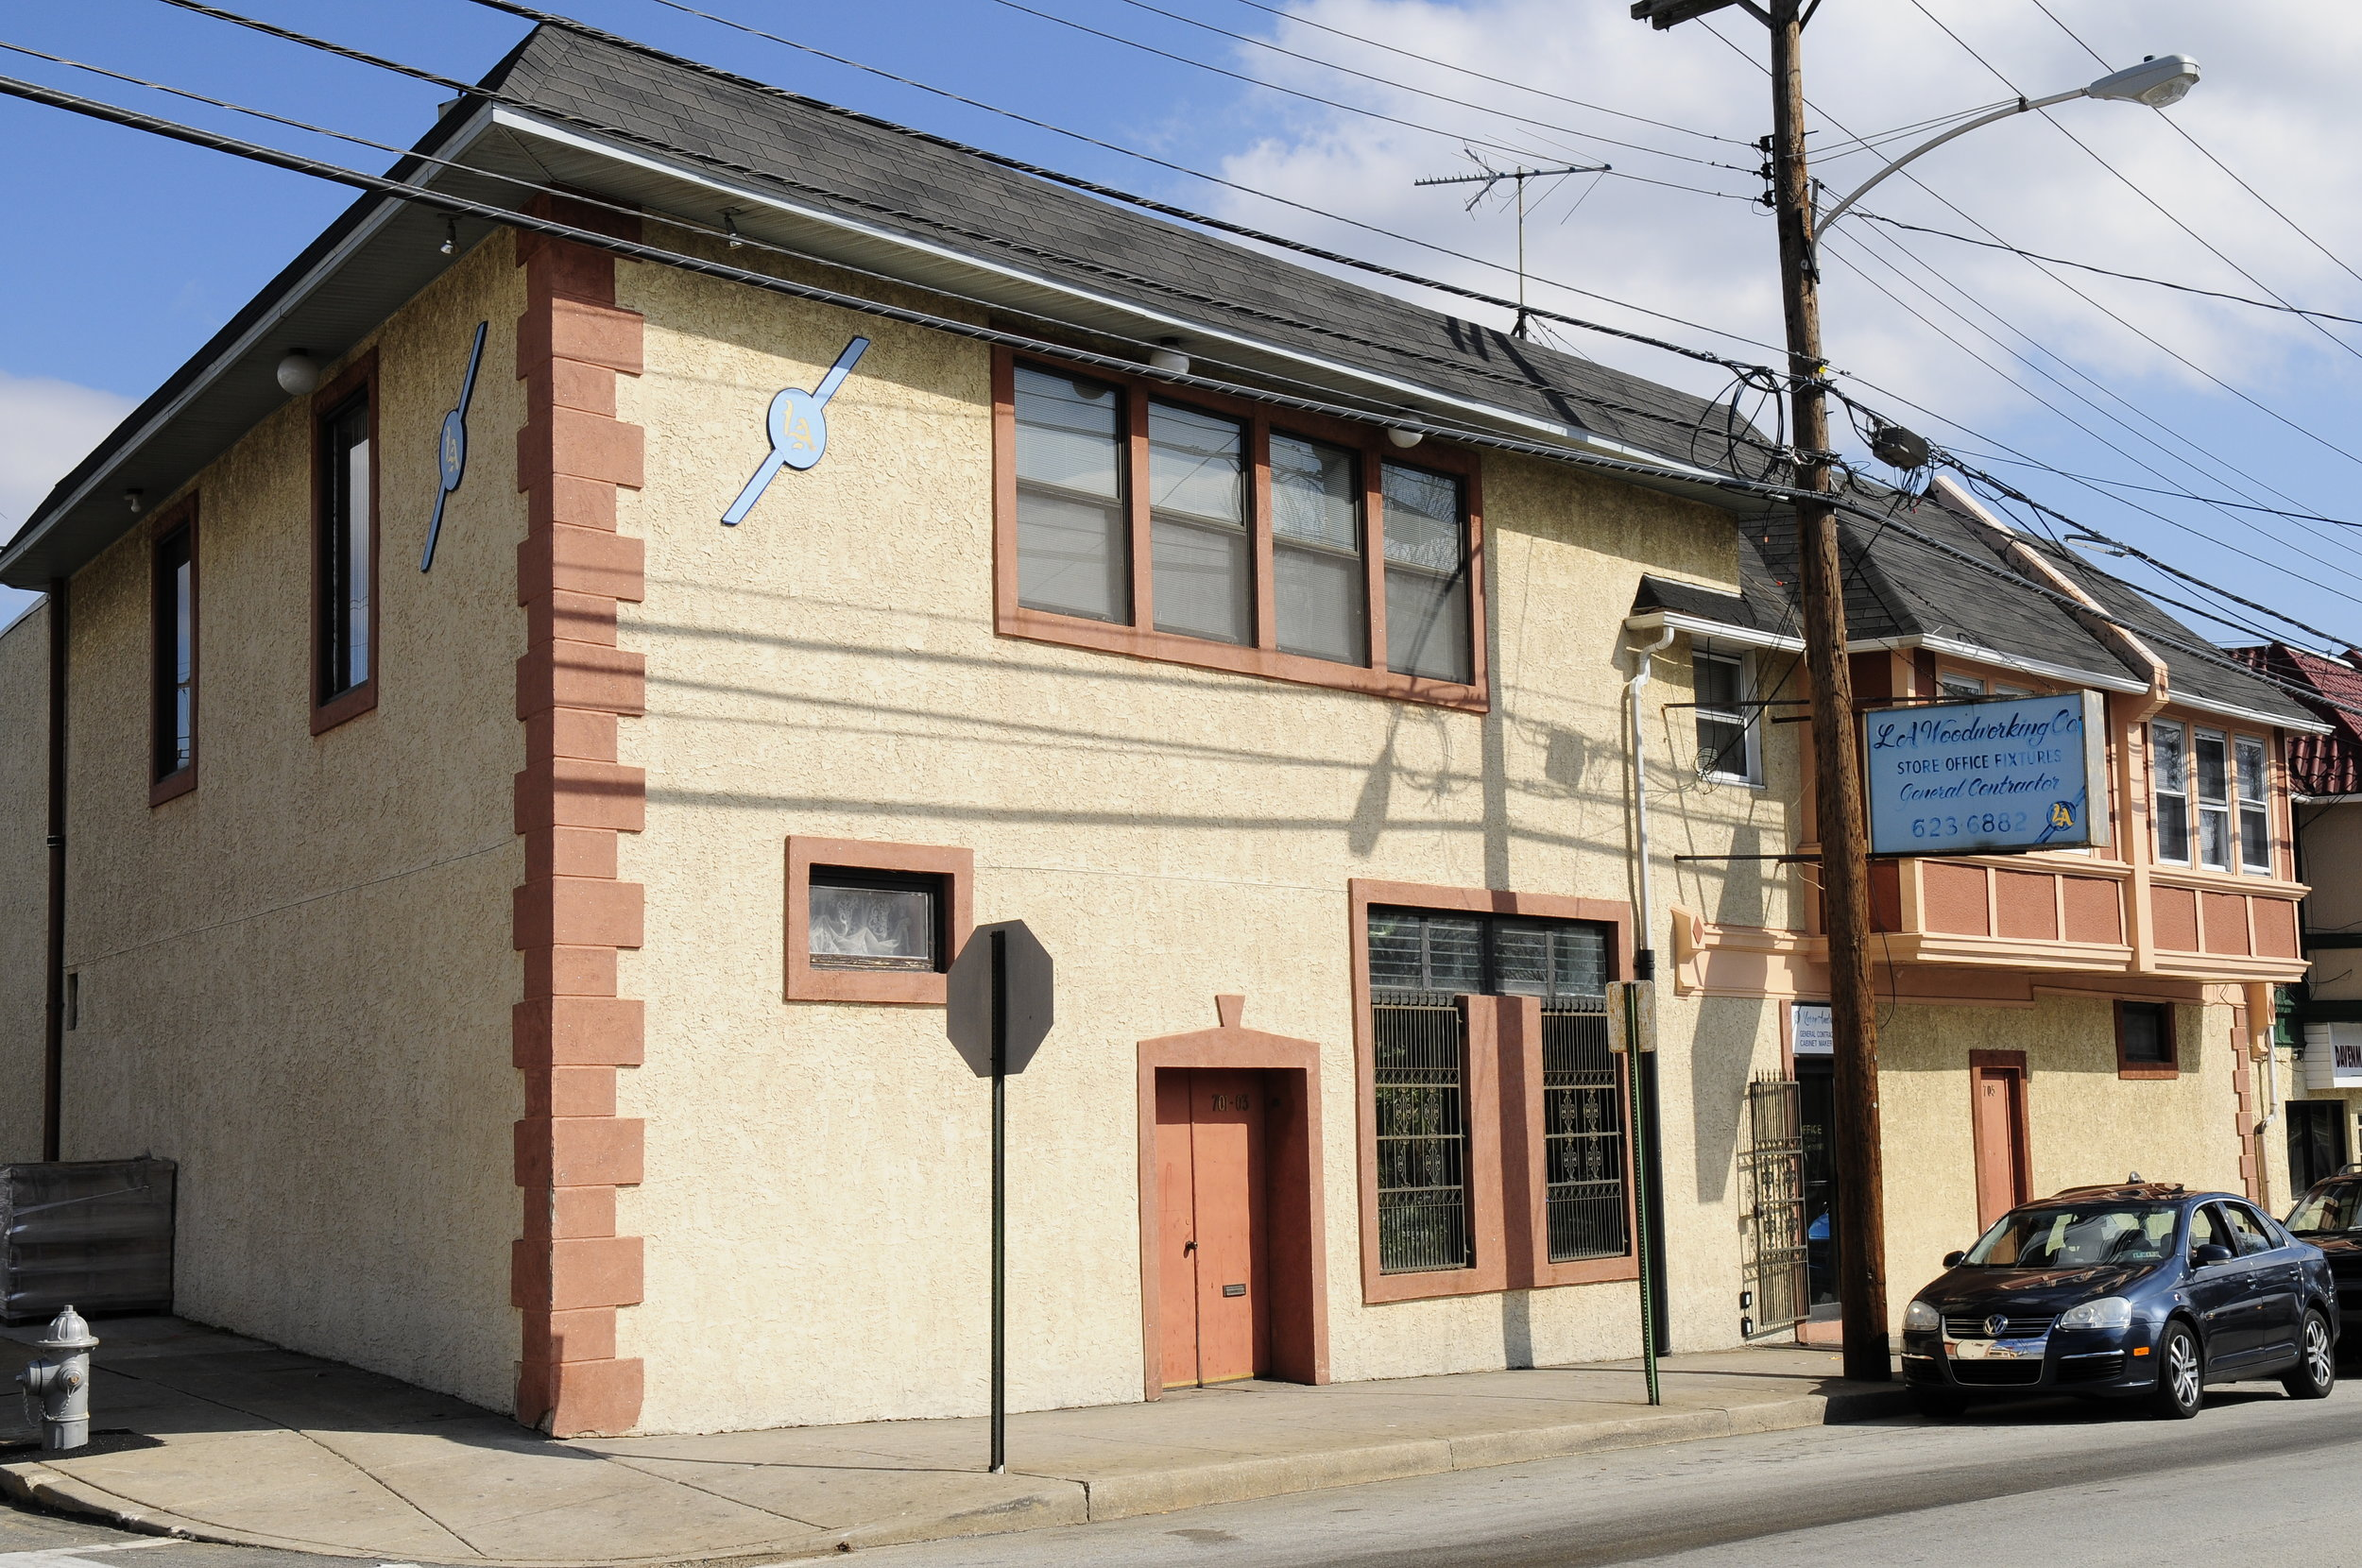 LA WOODWORKING CO INC - located at 701-705 Long Lane, Upper Darby, PA 19082